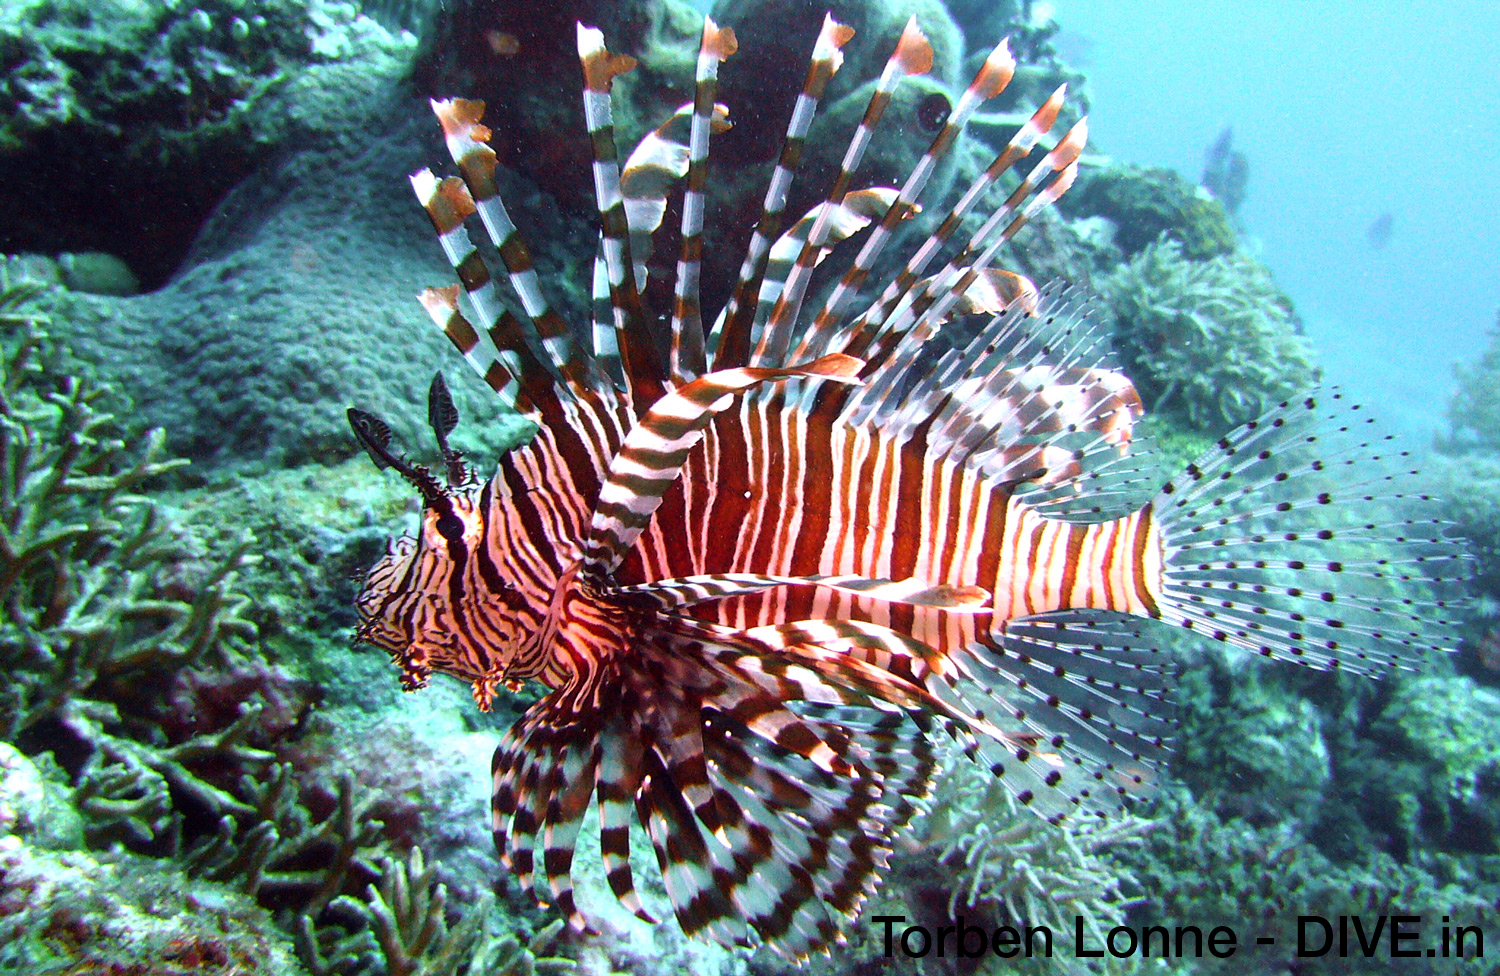 Lionfish in full profile. Moving to the side when diver approach. Picture taken in Indonesia.